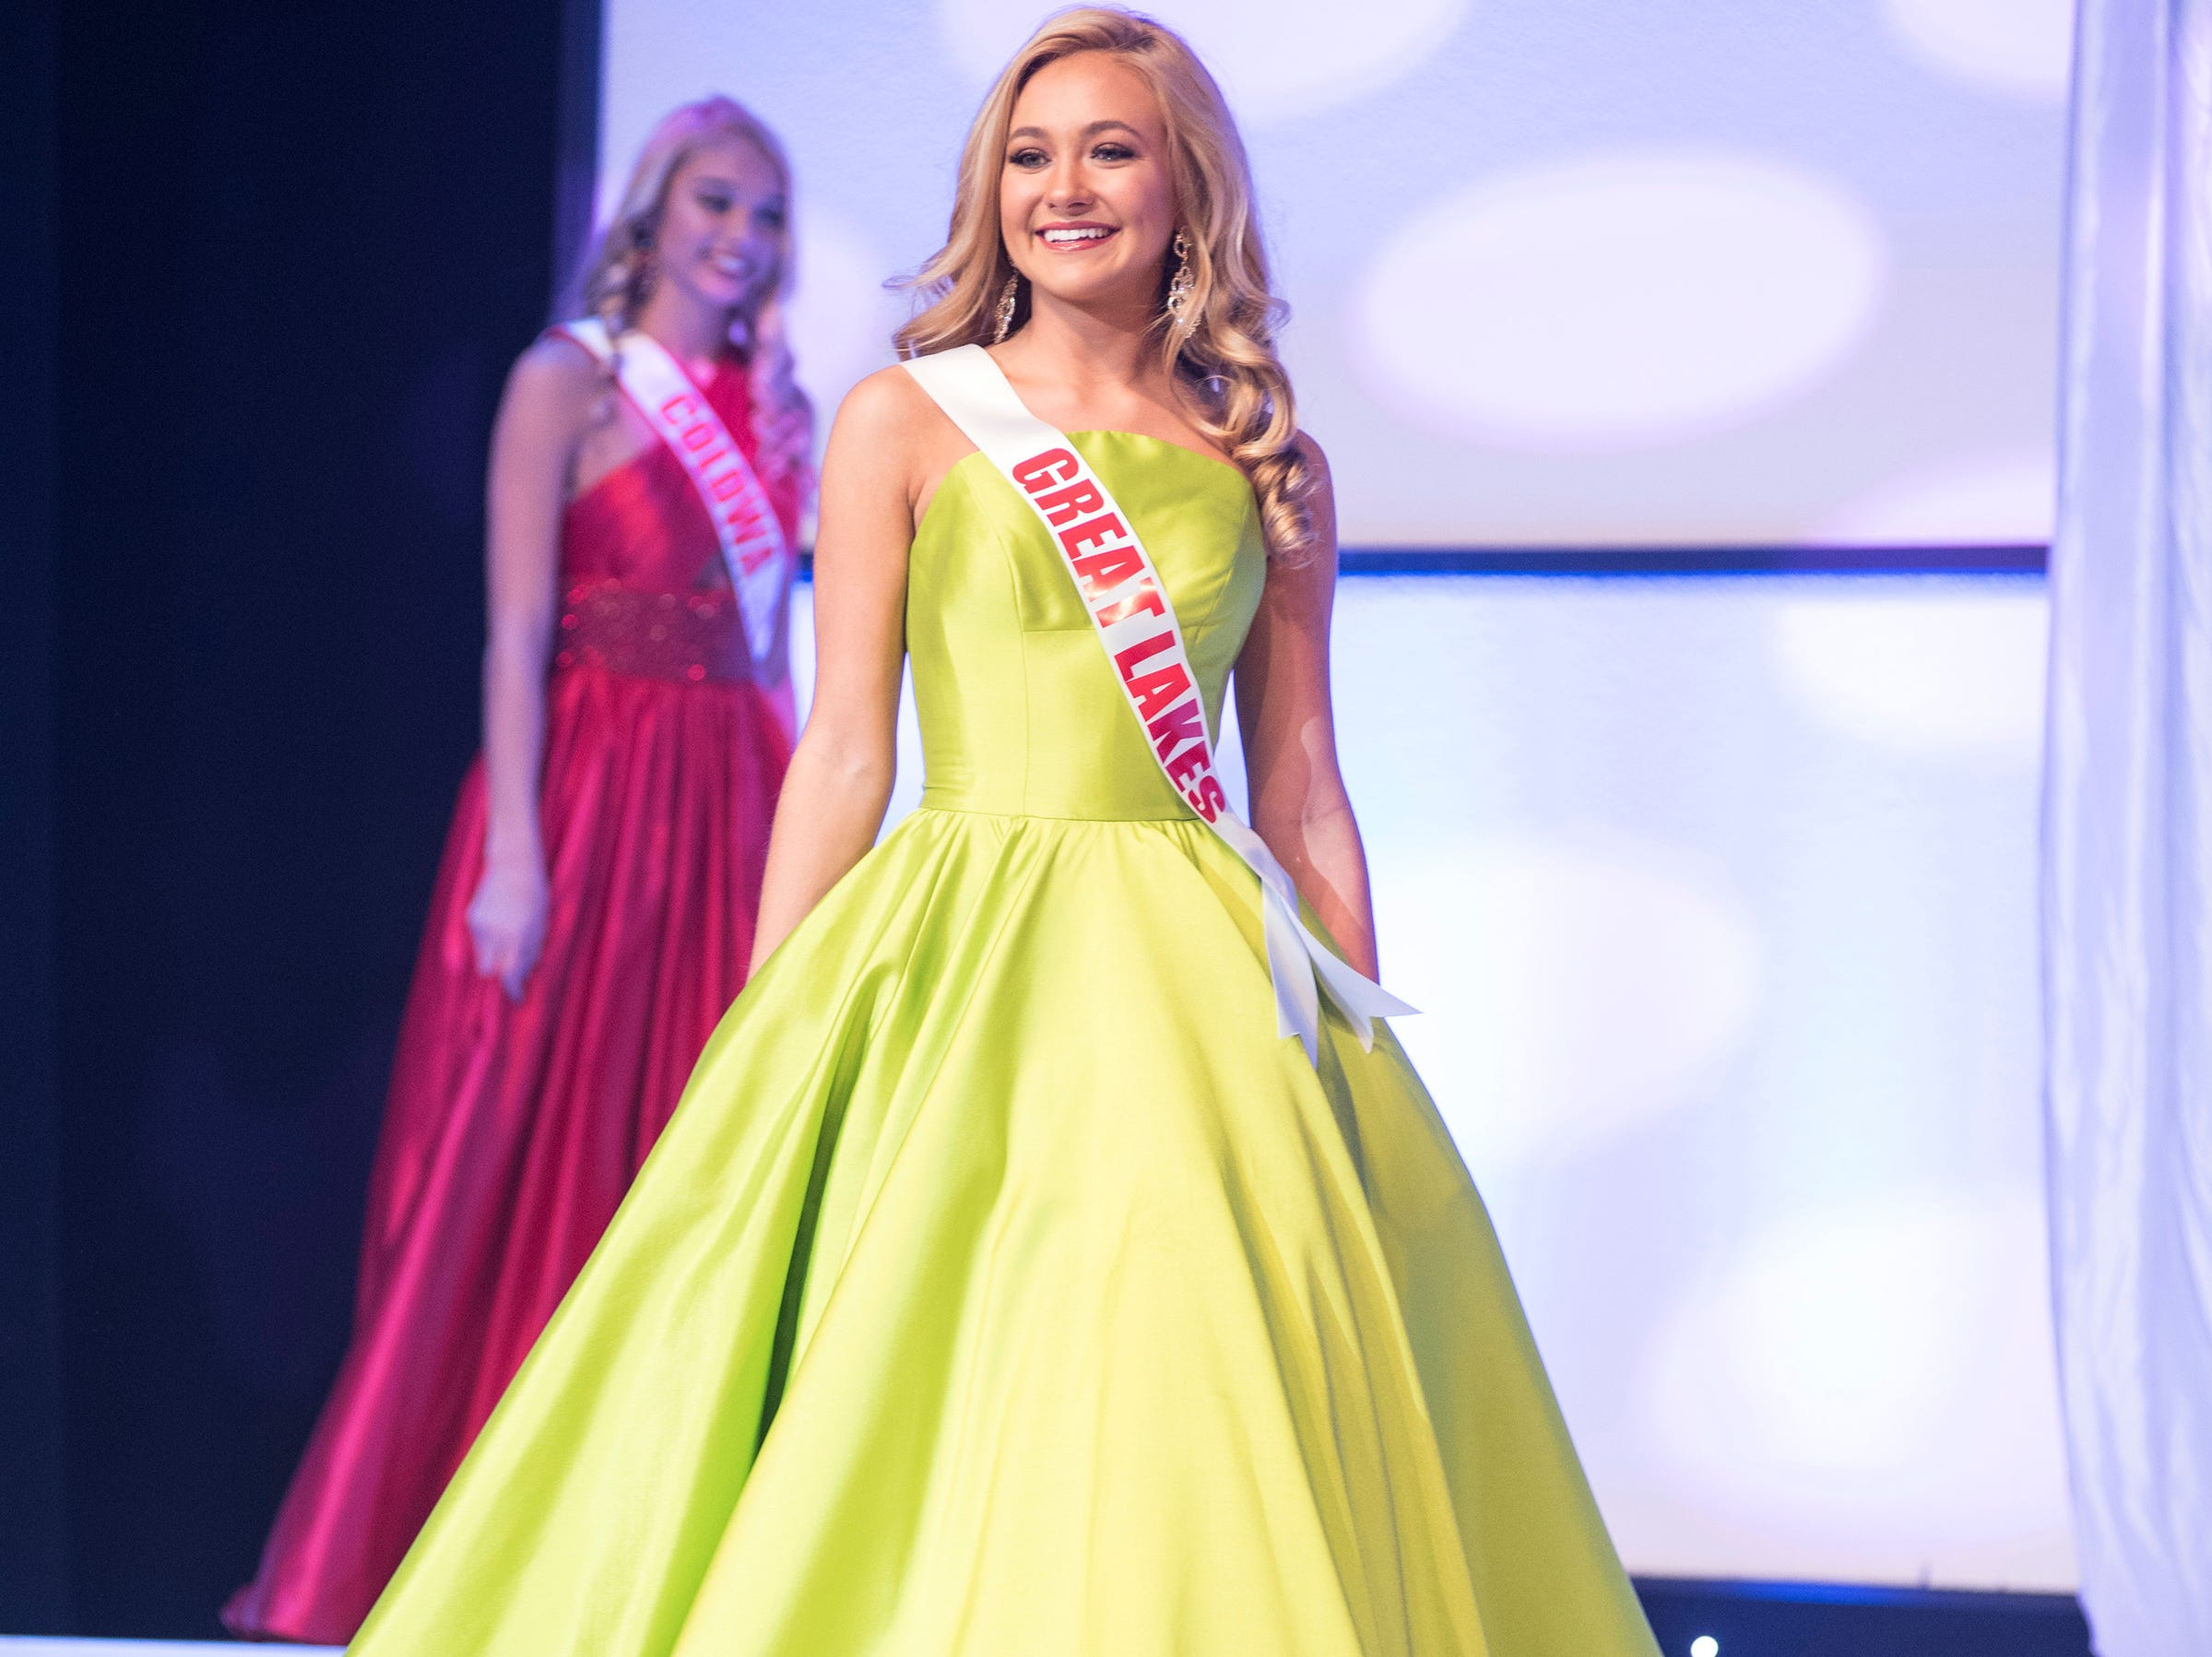 Miss Great Lakes Teen Rebecca Larsen competes in formal wear during the semifinal round of Miss Michigan USA Saturday, Sept. 22, 2018 at McMorran Theater.